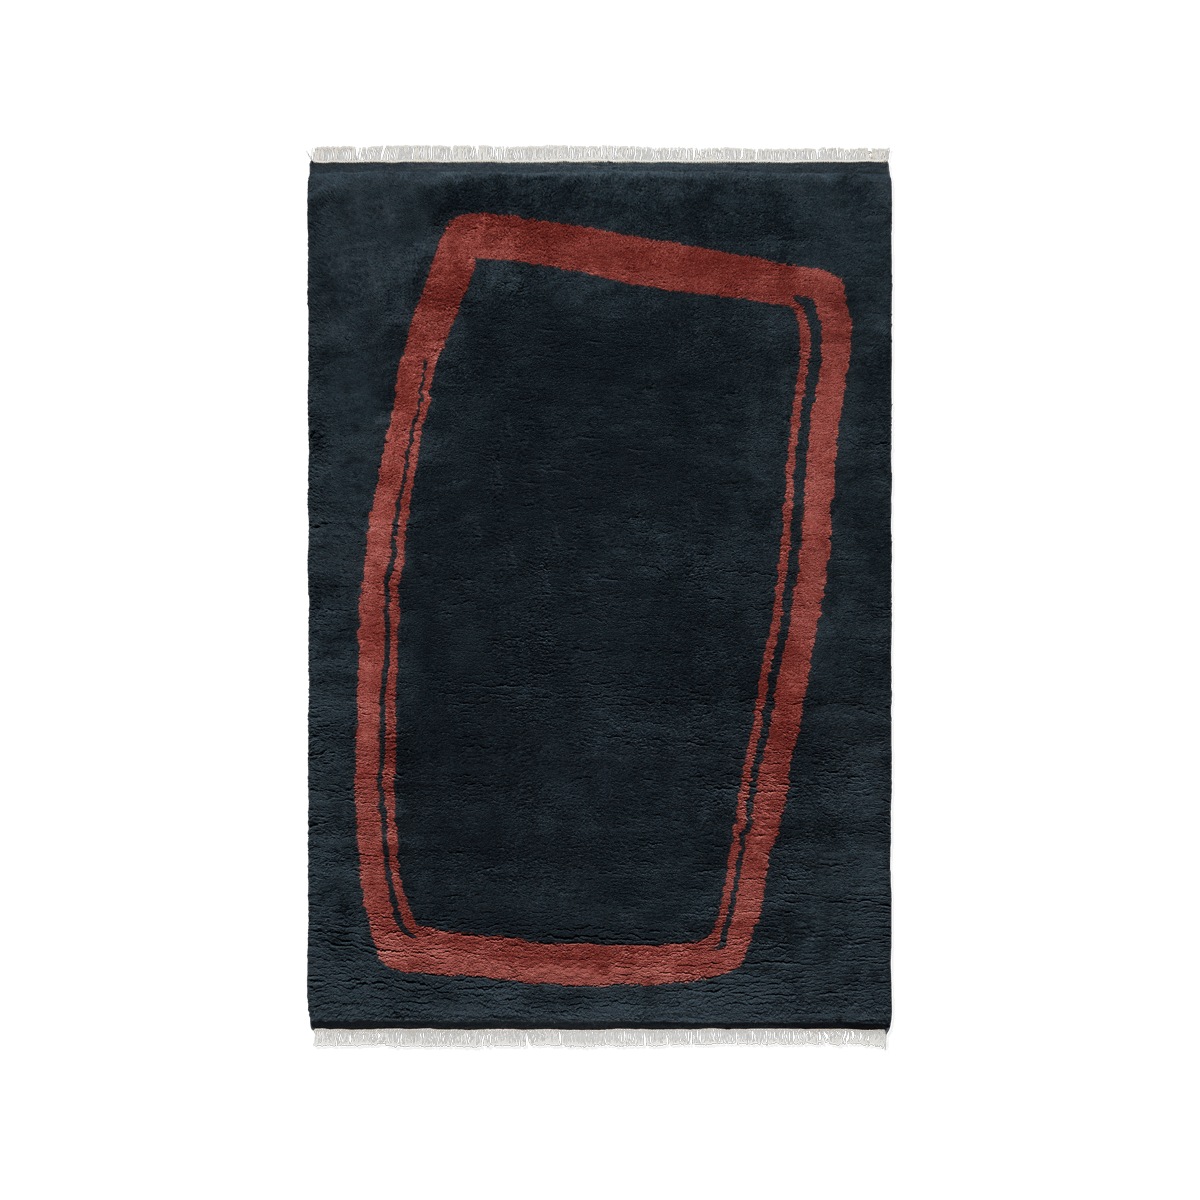 Product image of the shaggy rug Simple Objects 11 in Dark Blue. The rug has an uneven shape across it in a red color.